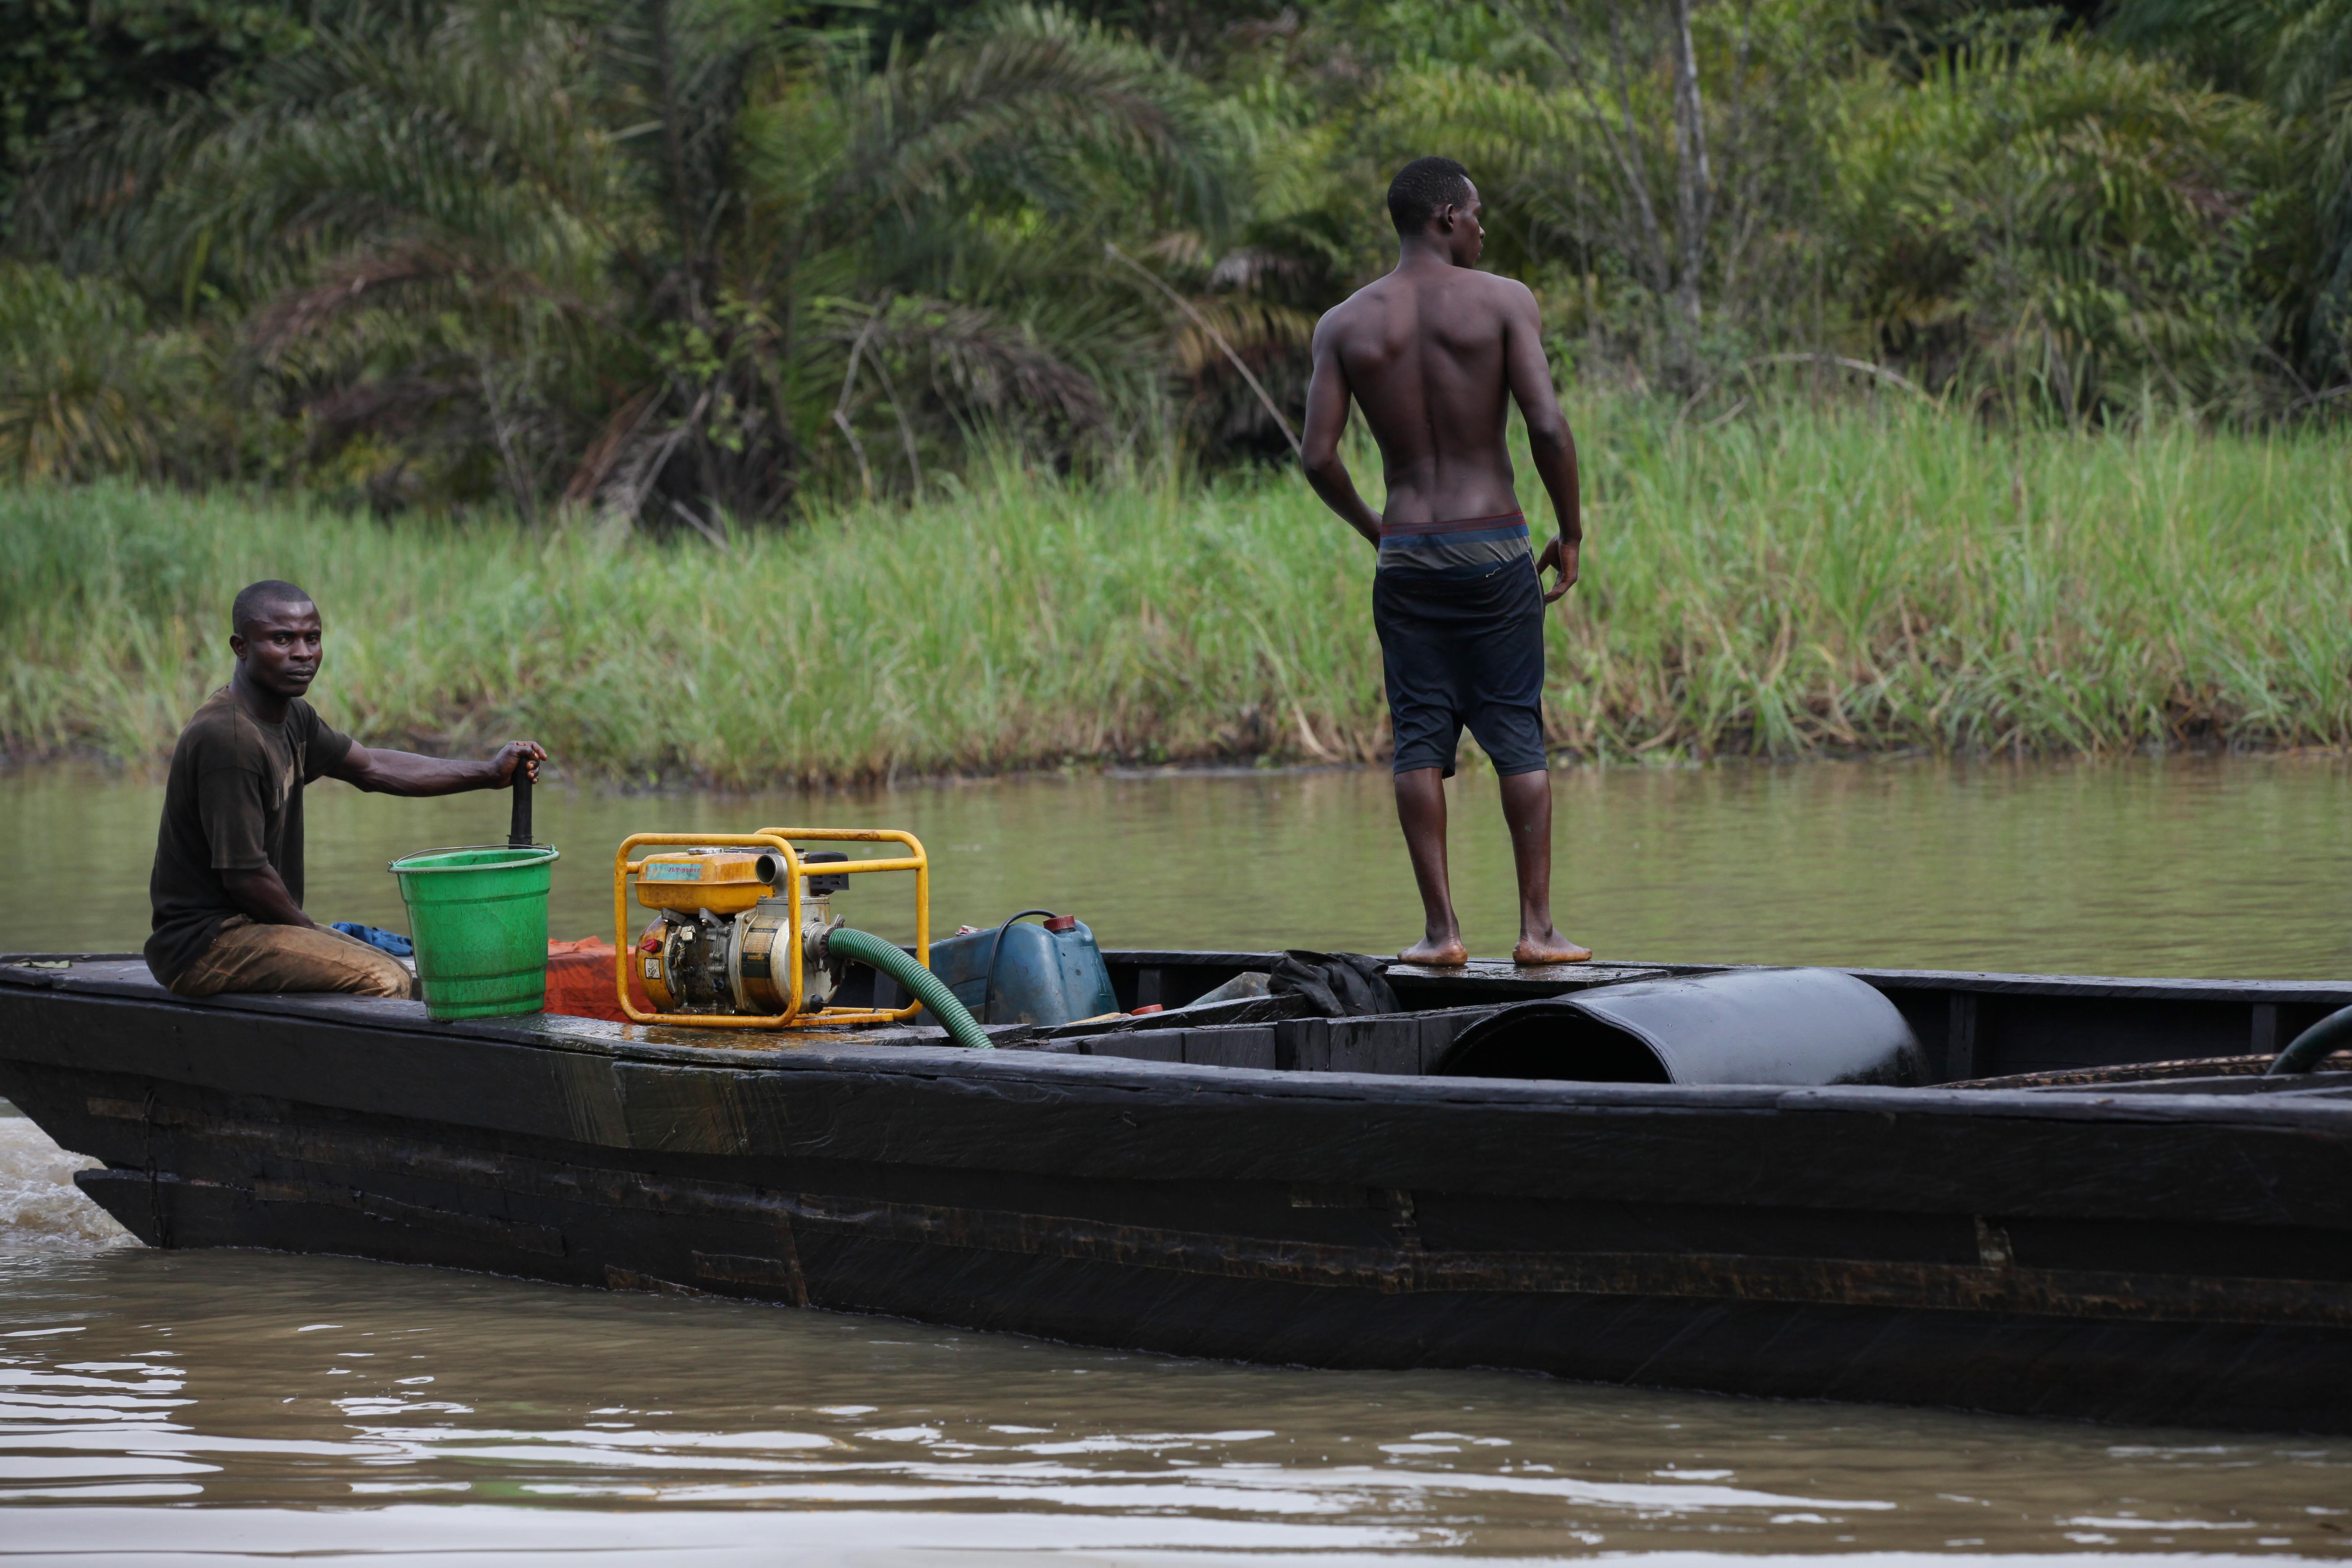 suspected oil thieves ride a wooden boat